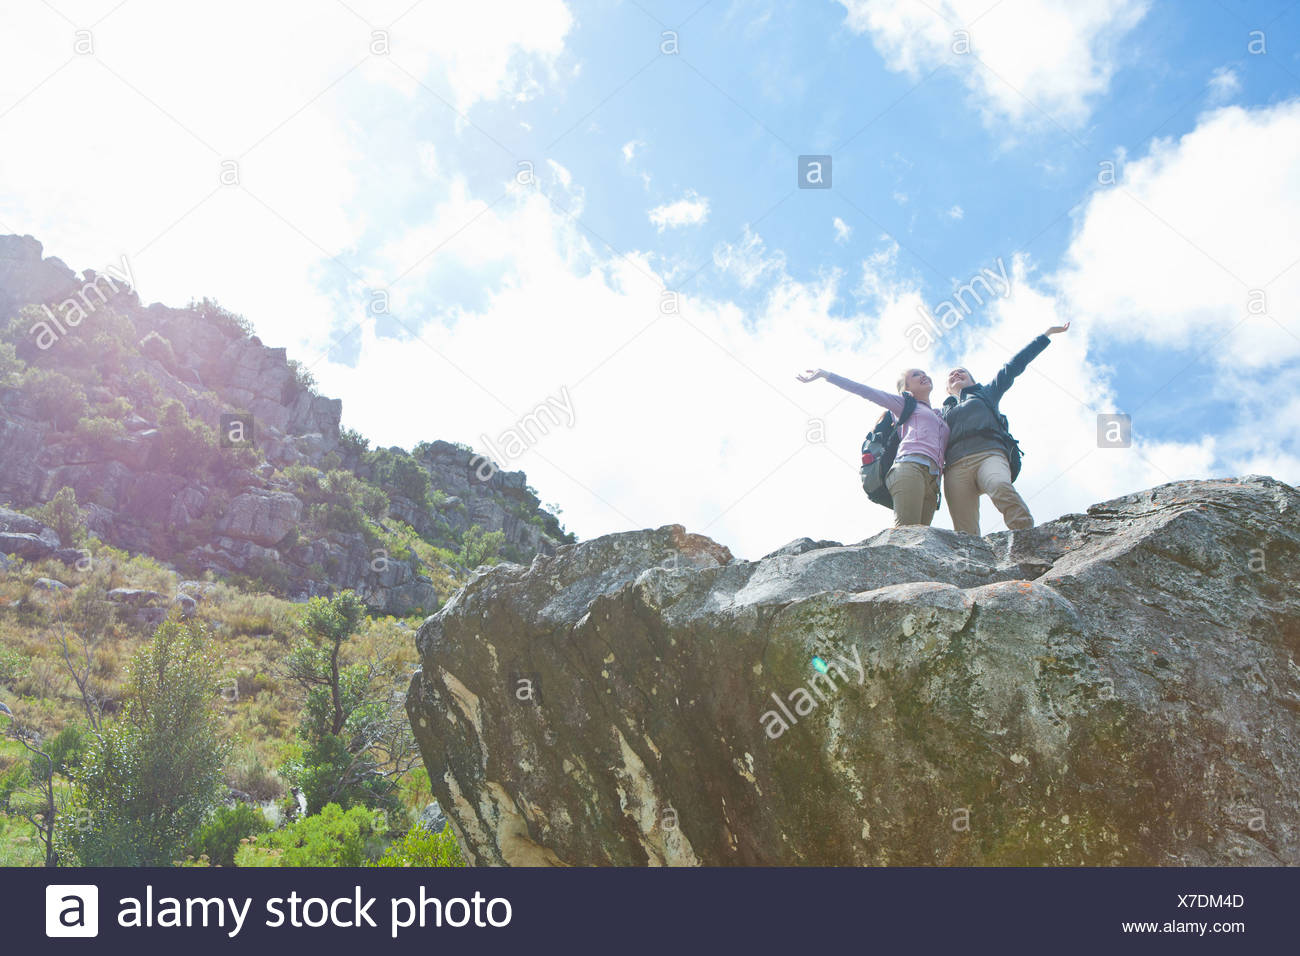 Two girl hikers celebrating on top of rock formation - Stock Image